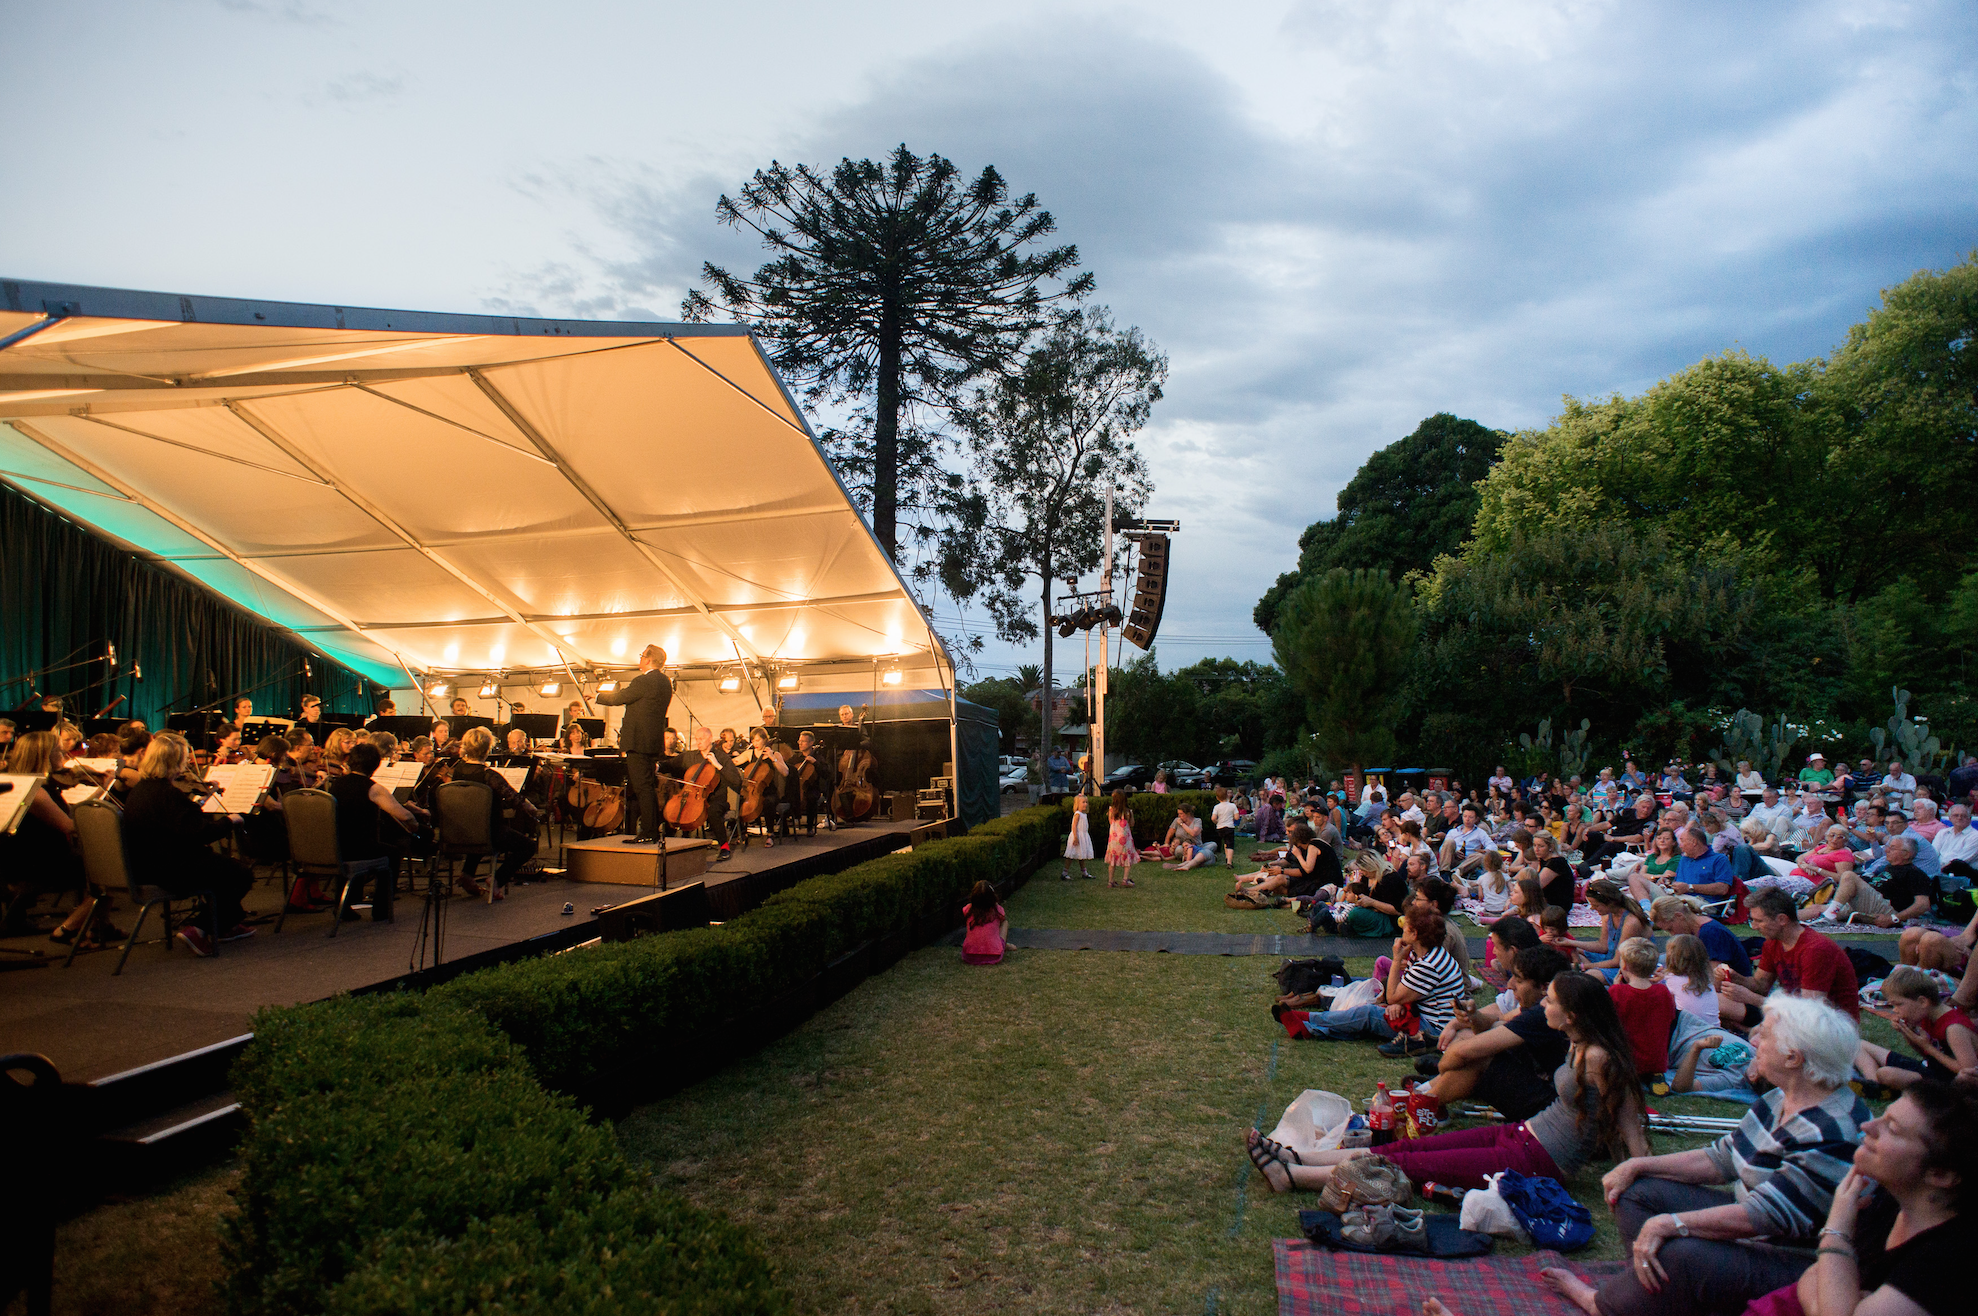 City of Stonnington's The Classics 2016